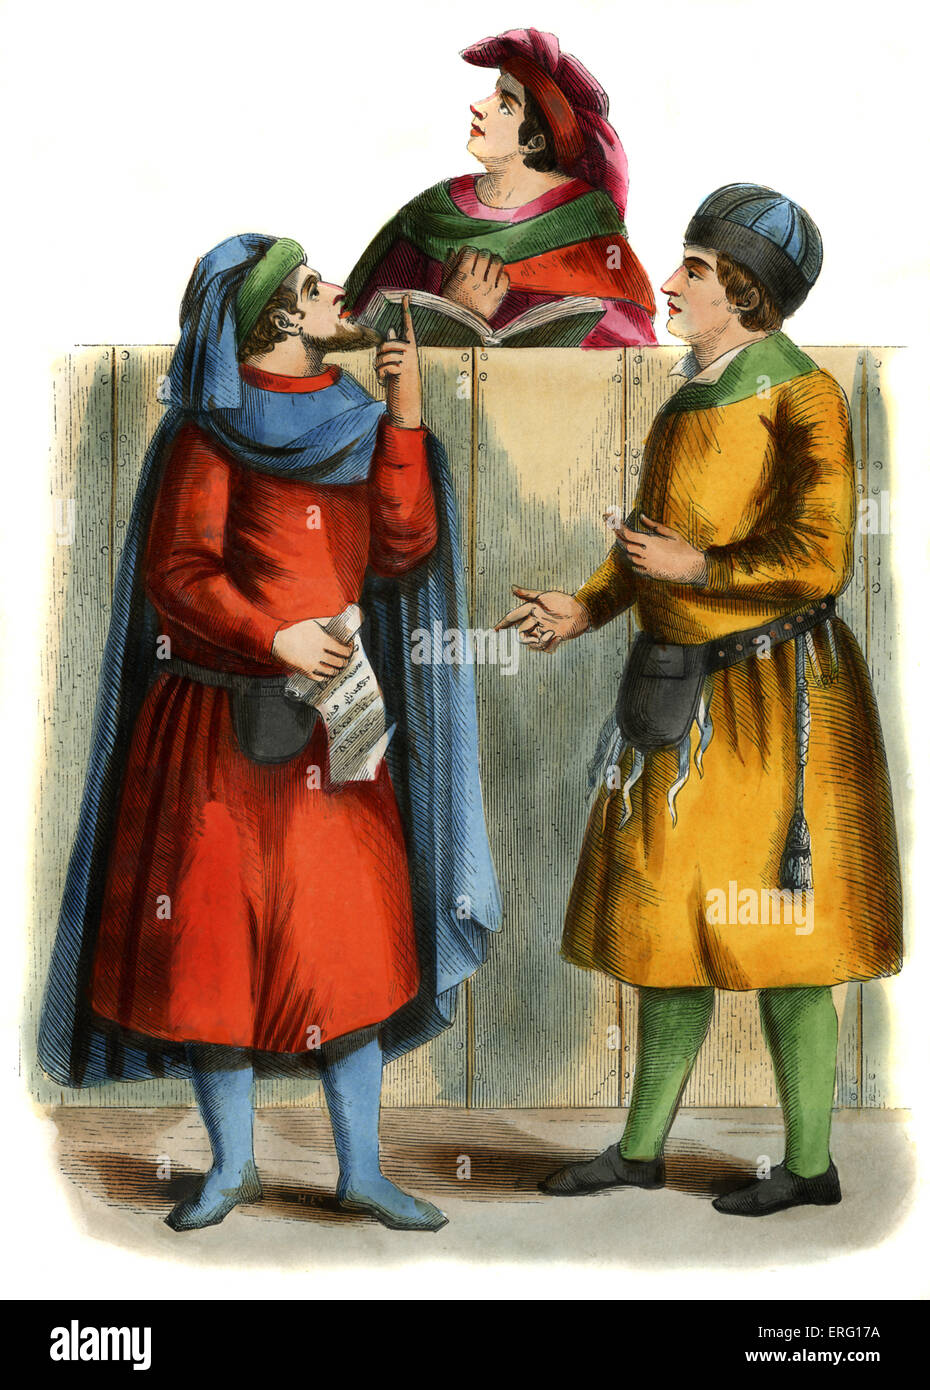 Italian merchants - male costume from 14th century, shown talking to notary, wearing rolled hats, leather money - Stock Image